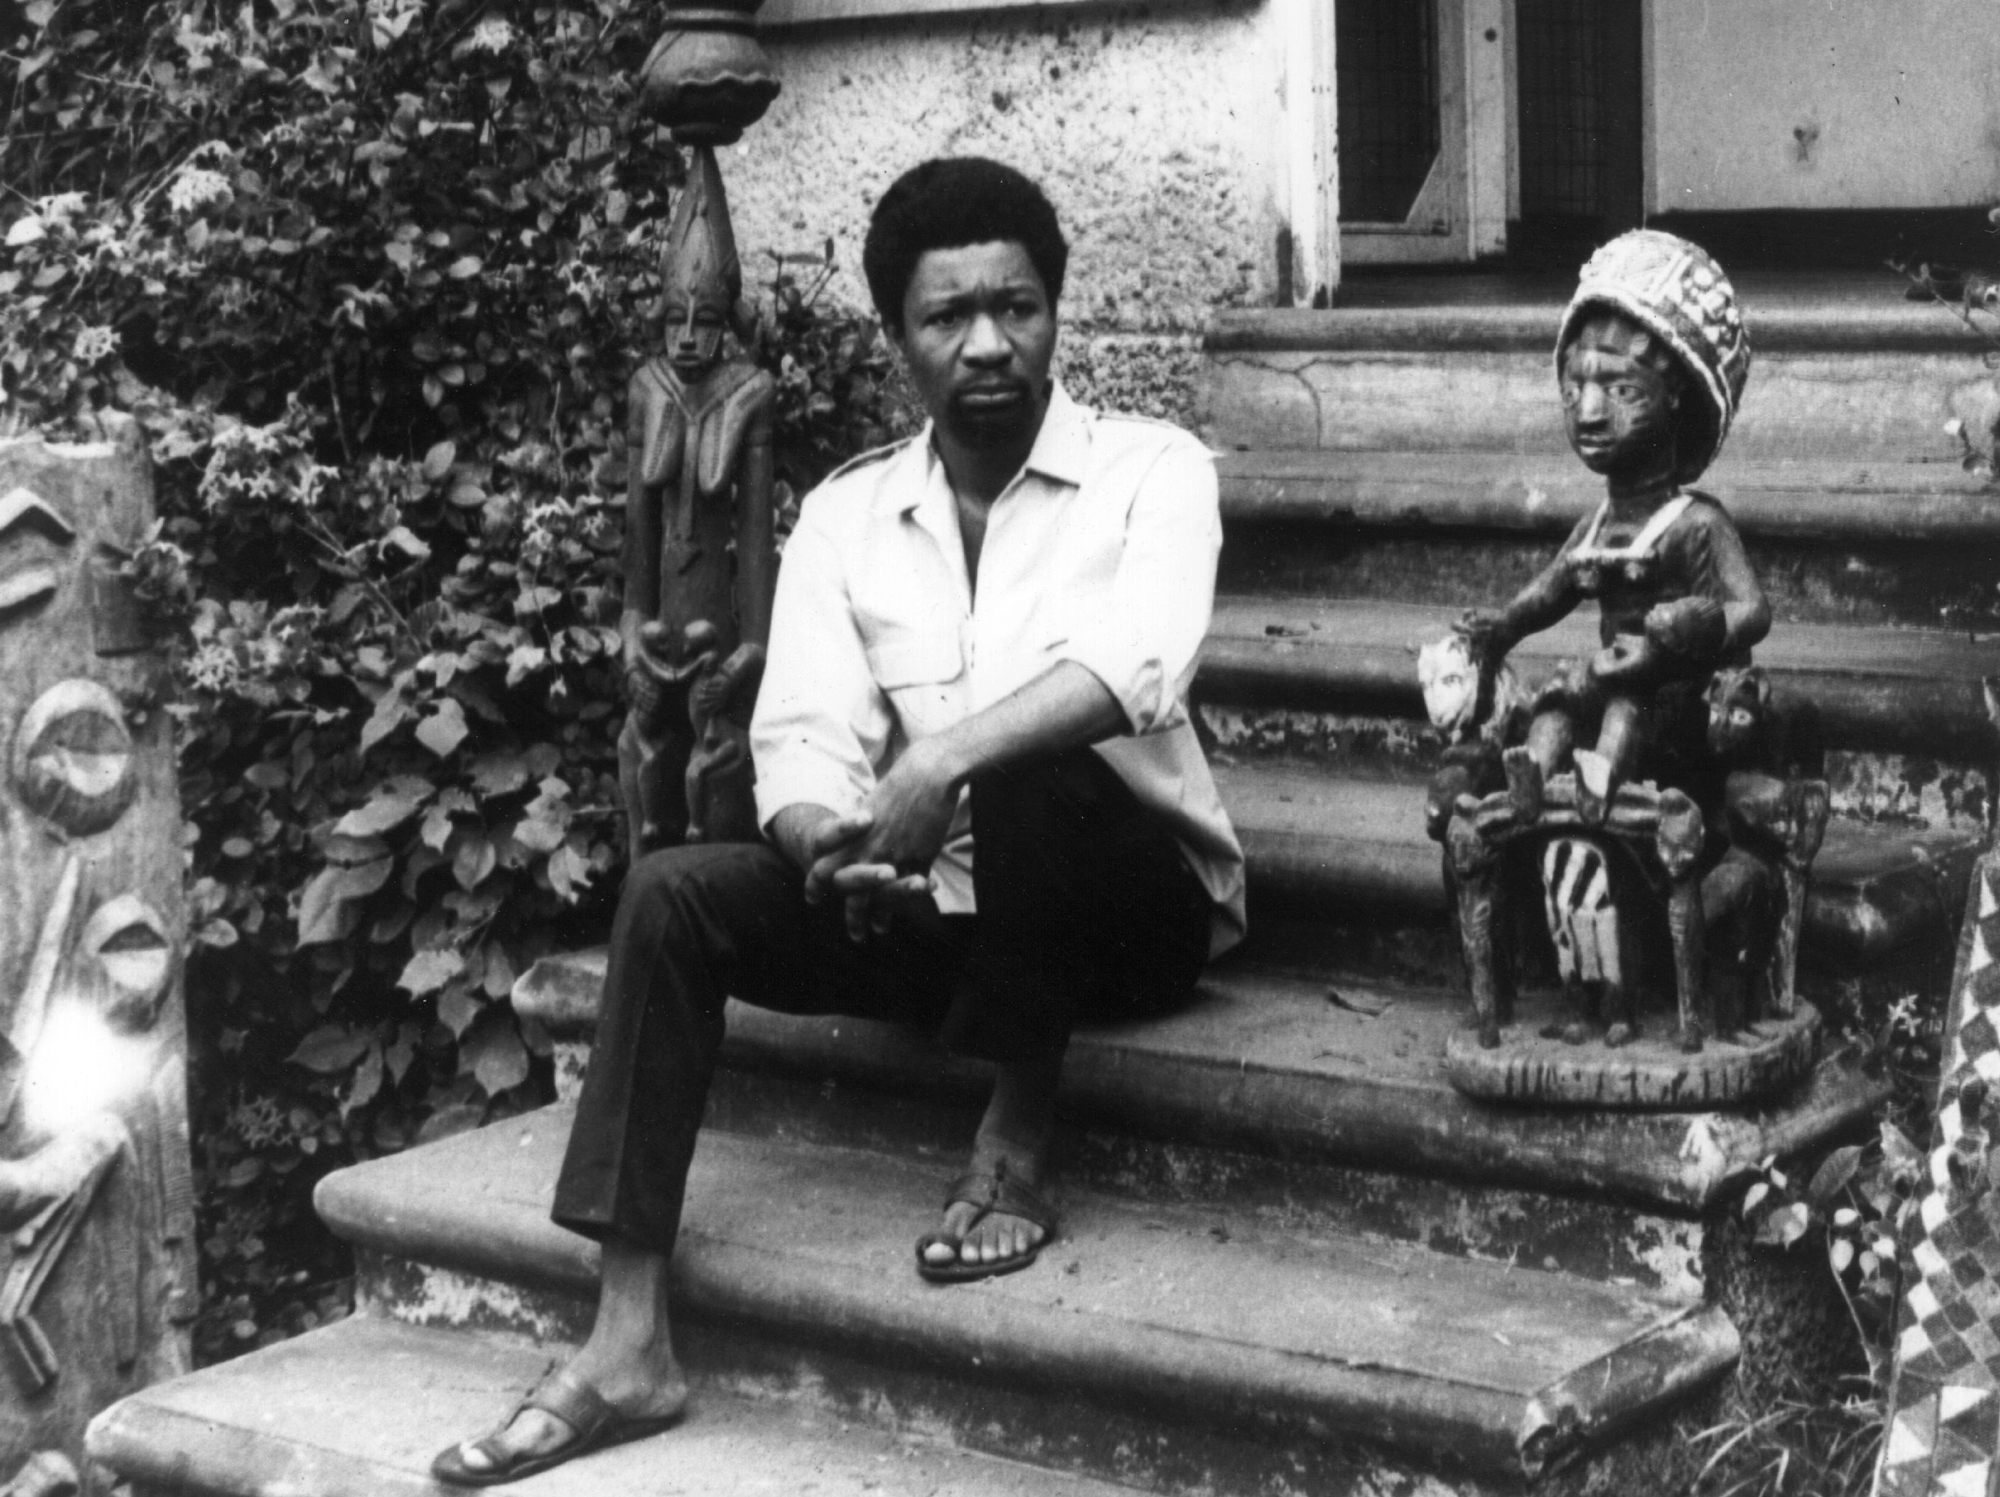 Photograph of Wole Soyinka, 1969